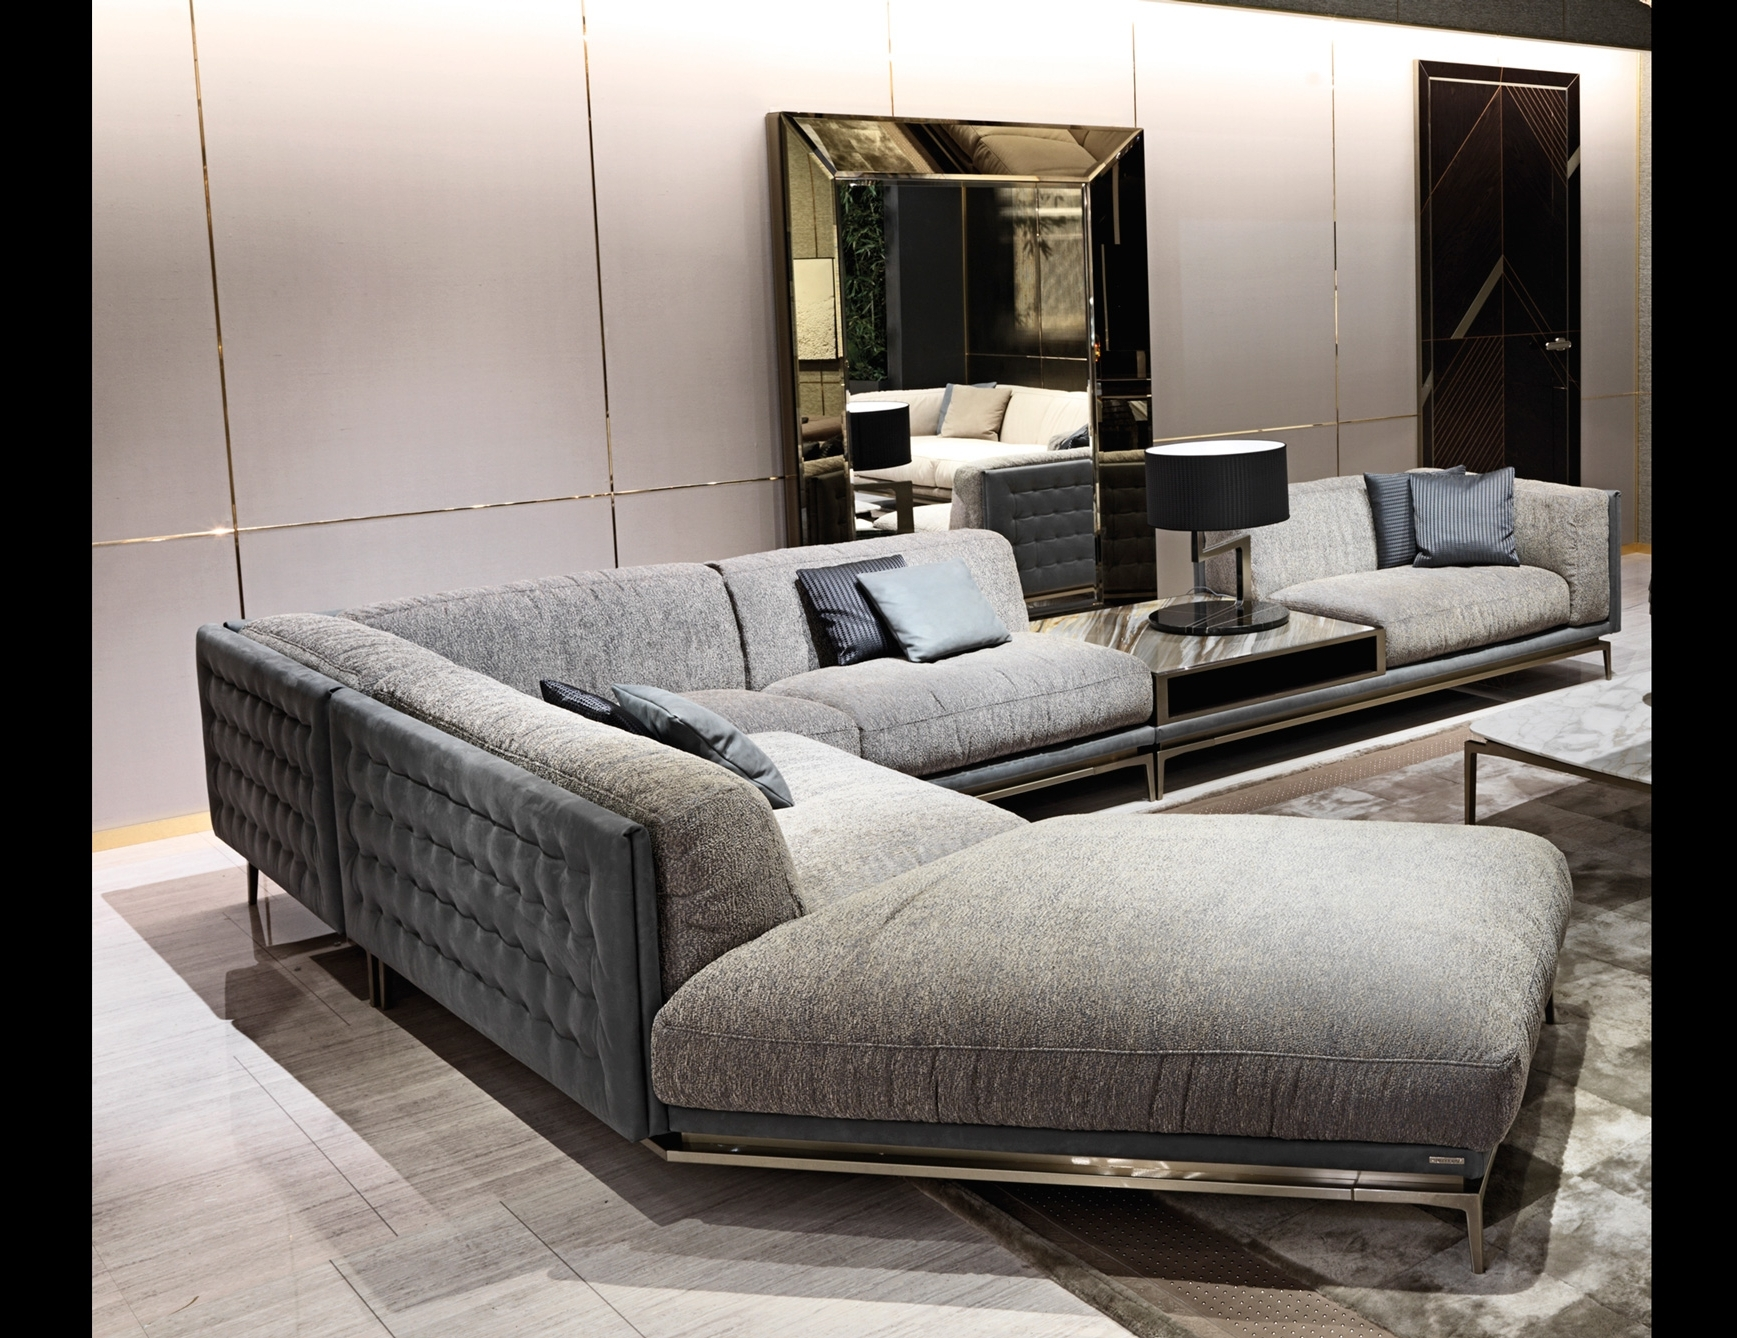 Widely Used Italian Designer Luxury High End Sofas & Sofa Chairs: Nella Vetrina For High End Sofas (View 15 of 15)